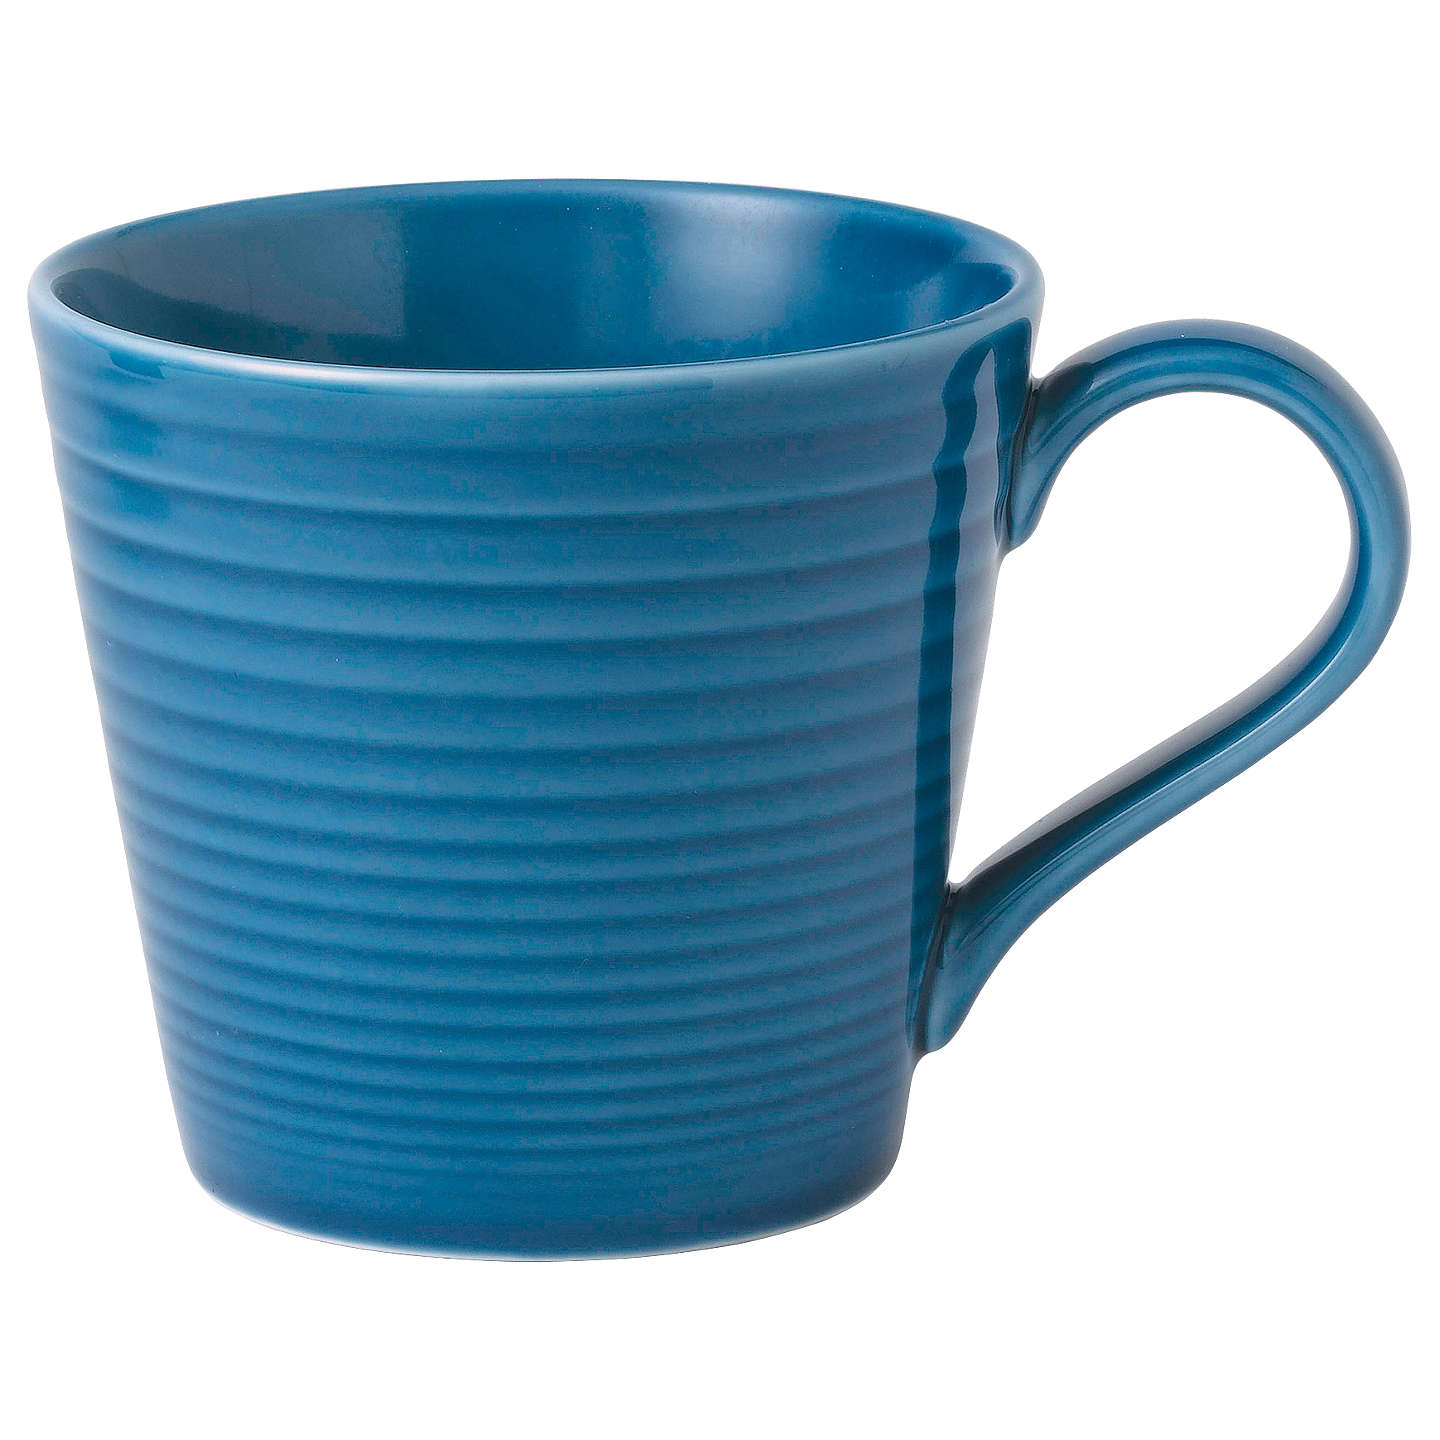 Gordon Ramsay by Royal Doulton Maze Mug, 400ml, Denim at John Lewis